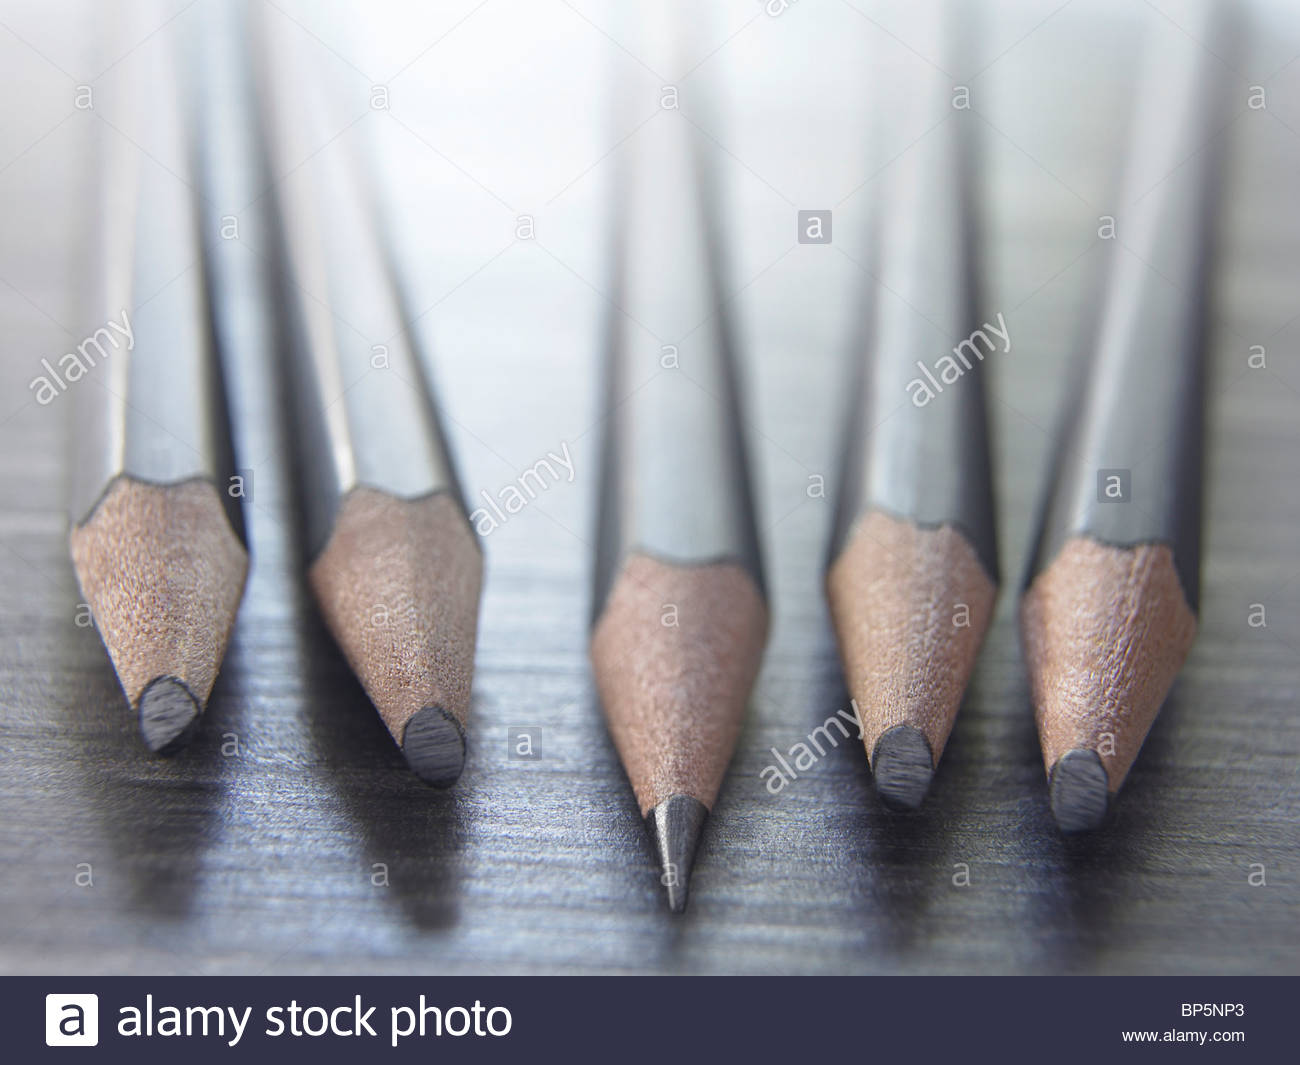 Close up of sharp pencil among dull pencils - Stock Image